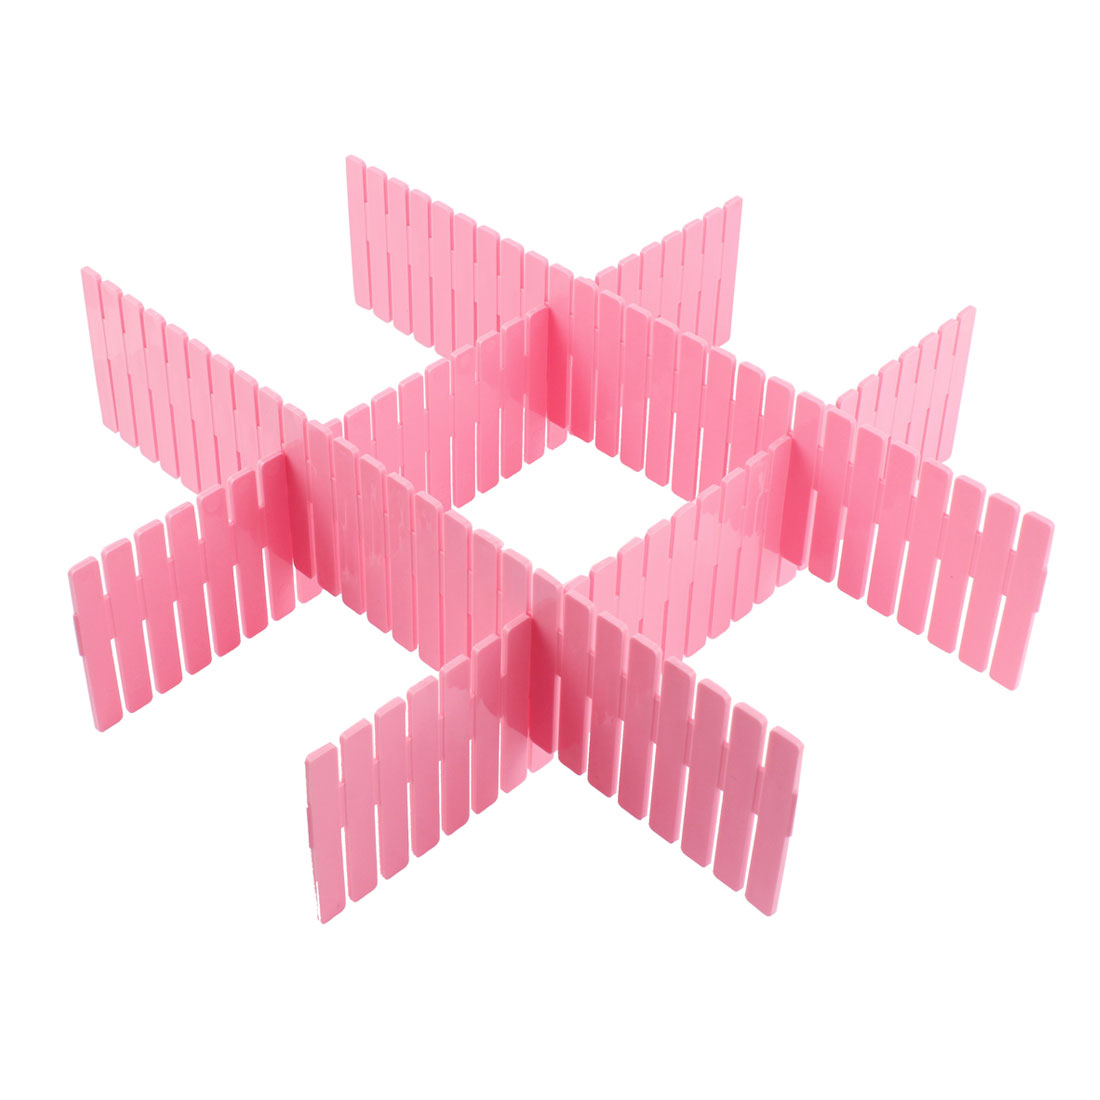 Back to School / College Accessories | Home Storage Drawer Closet Grid Divider Organizer Container 32cmx7cm 4pcs Pink